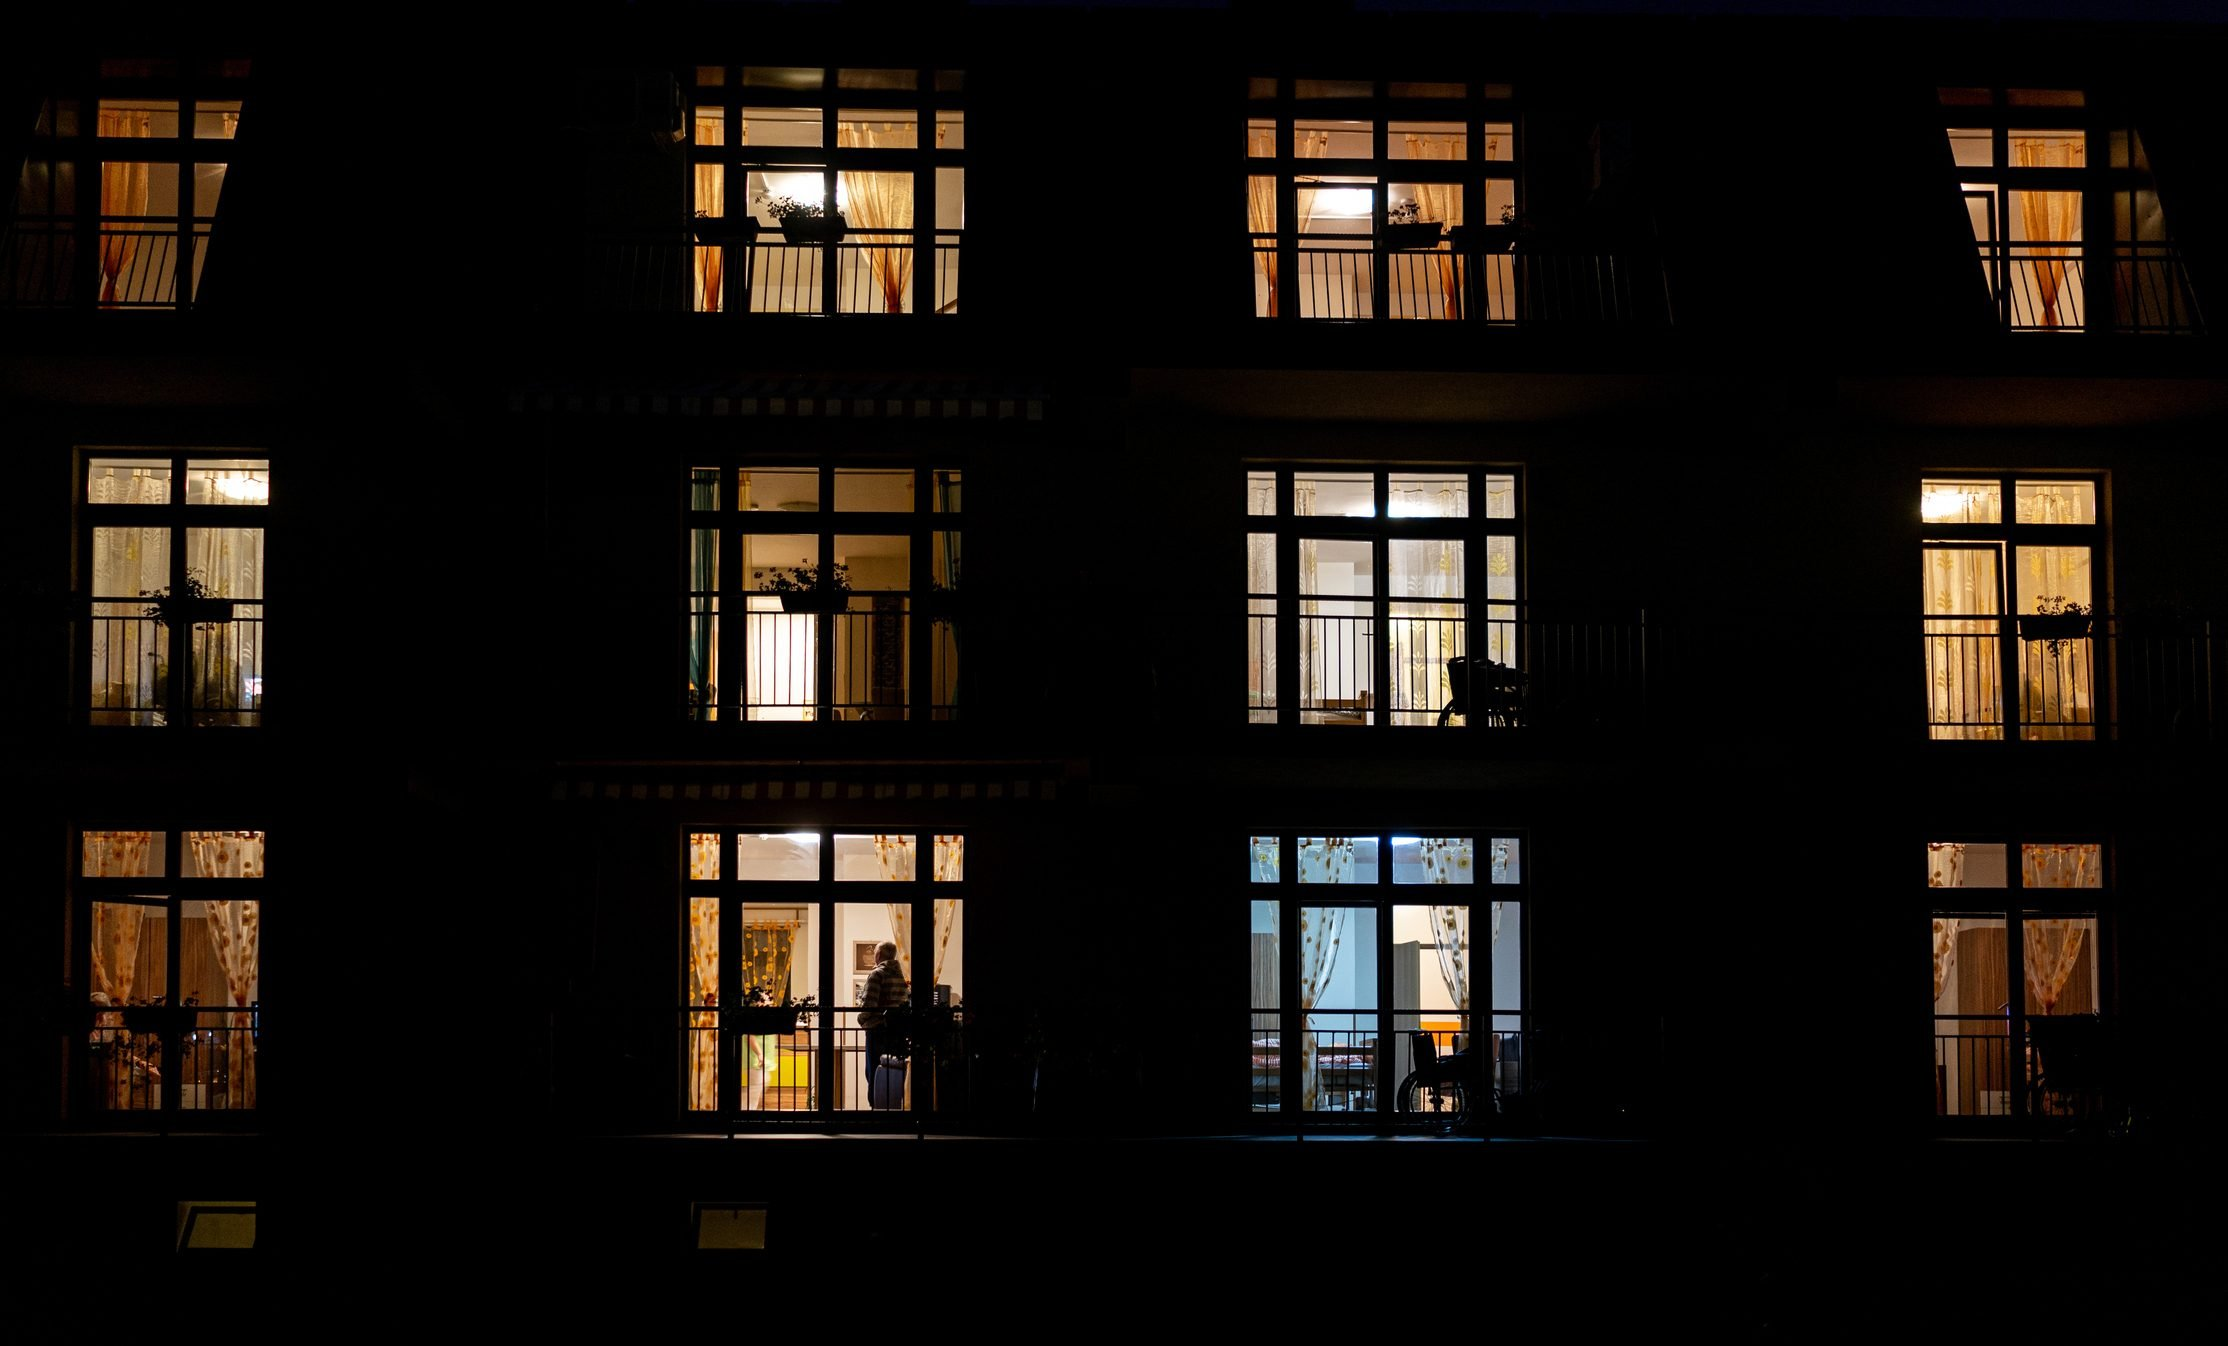 Illuminated windows of night house with people inside